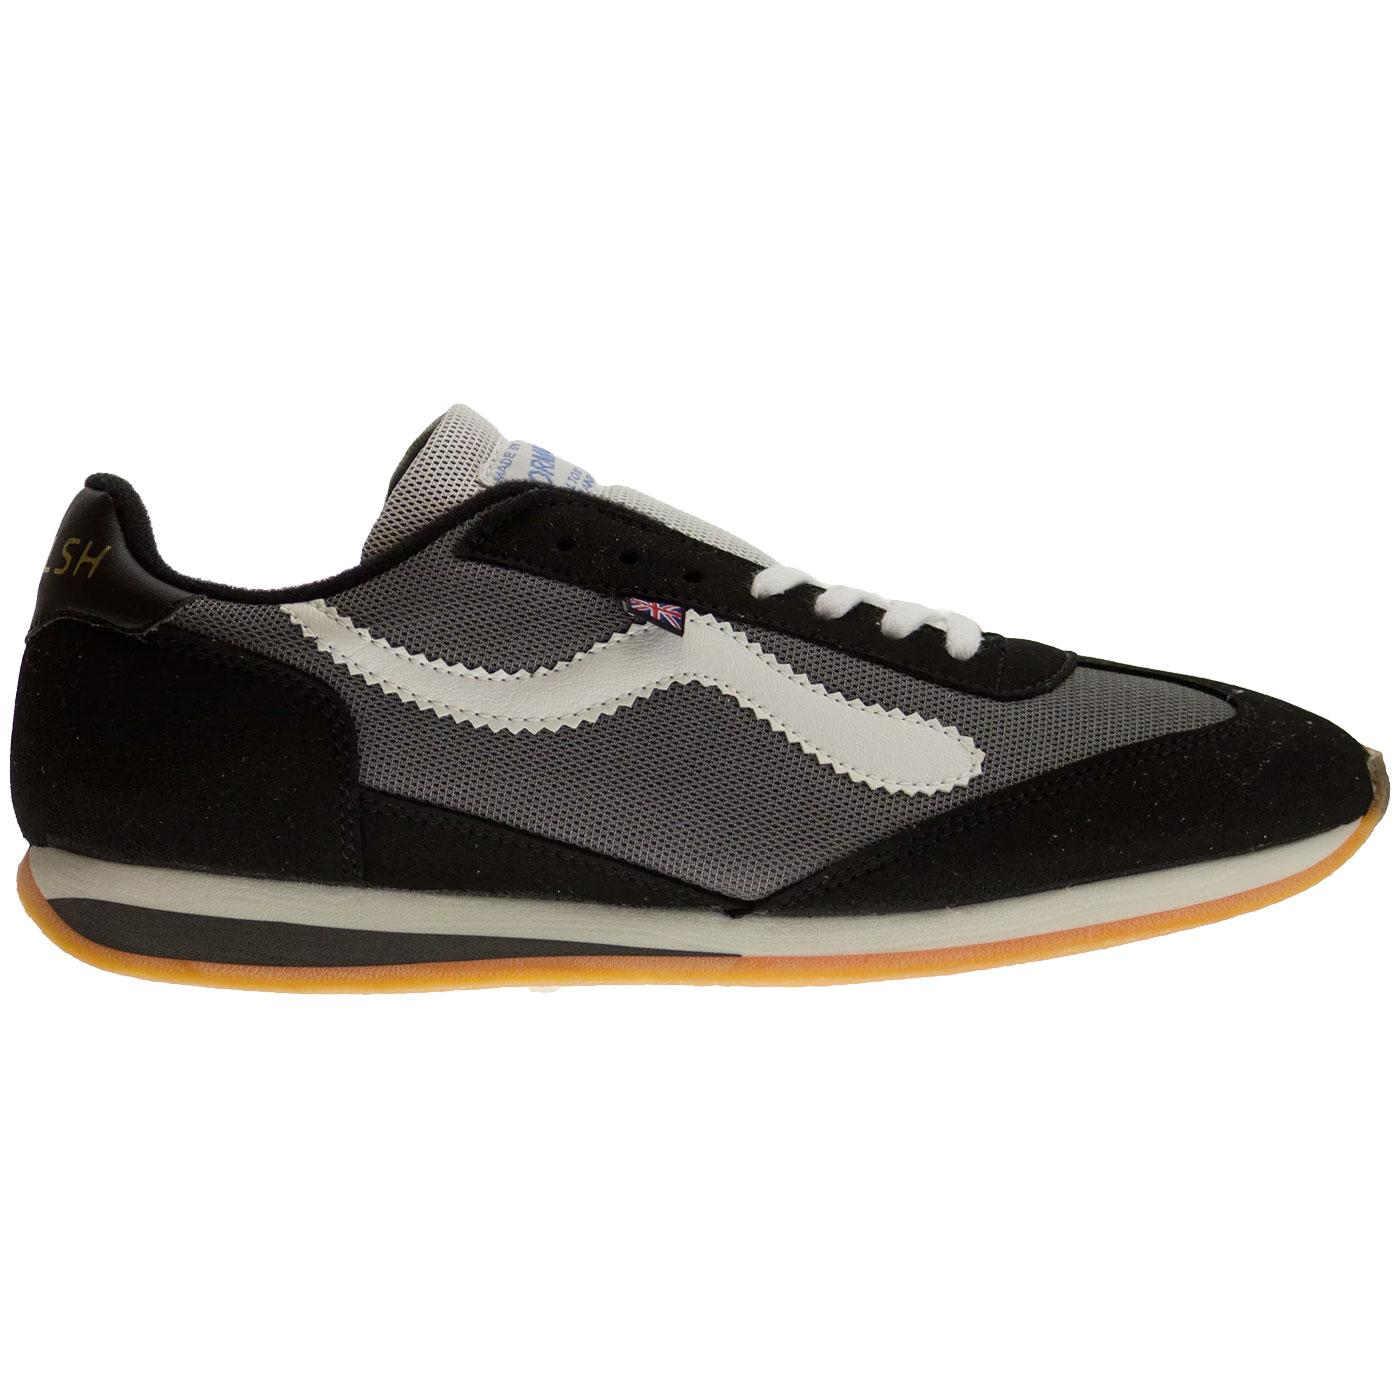 Fierce WALSH Men's 1970's Retro Running Trainers B